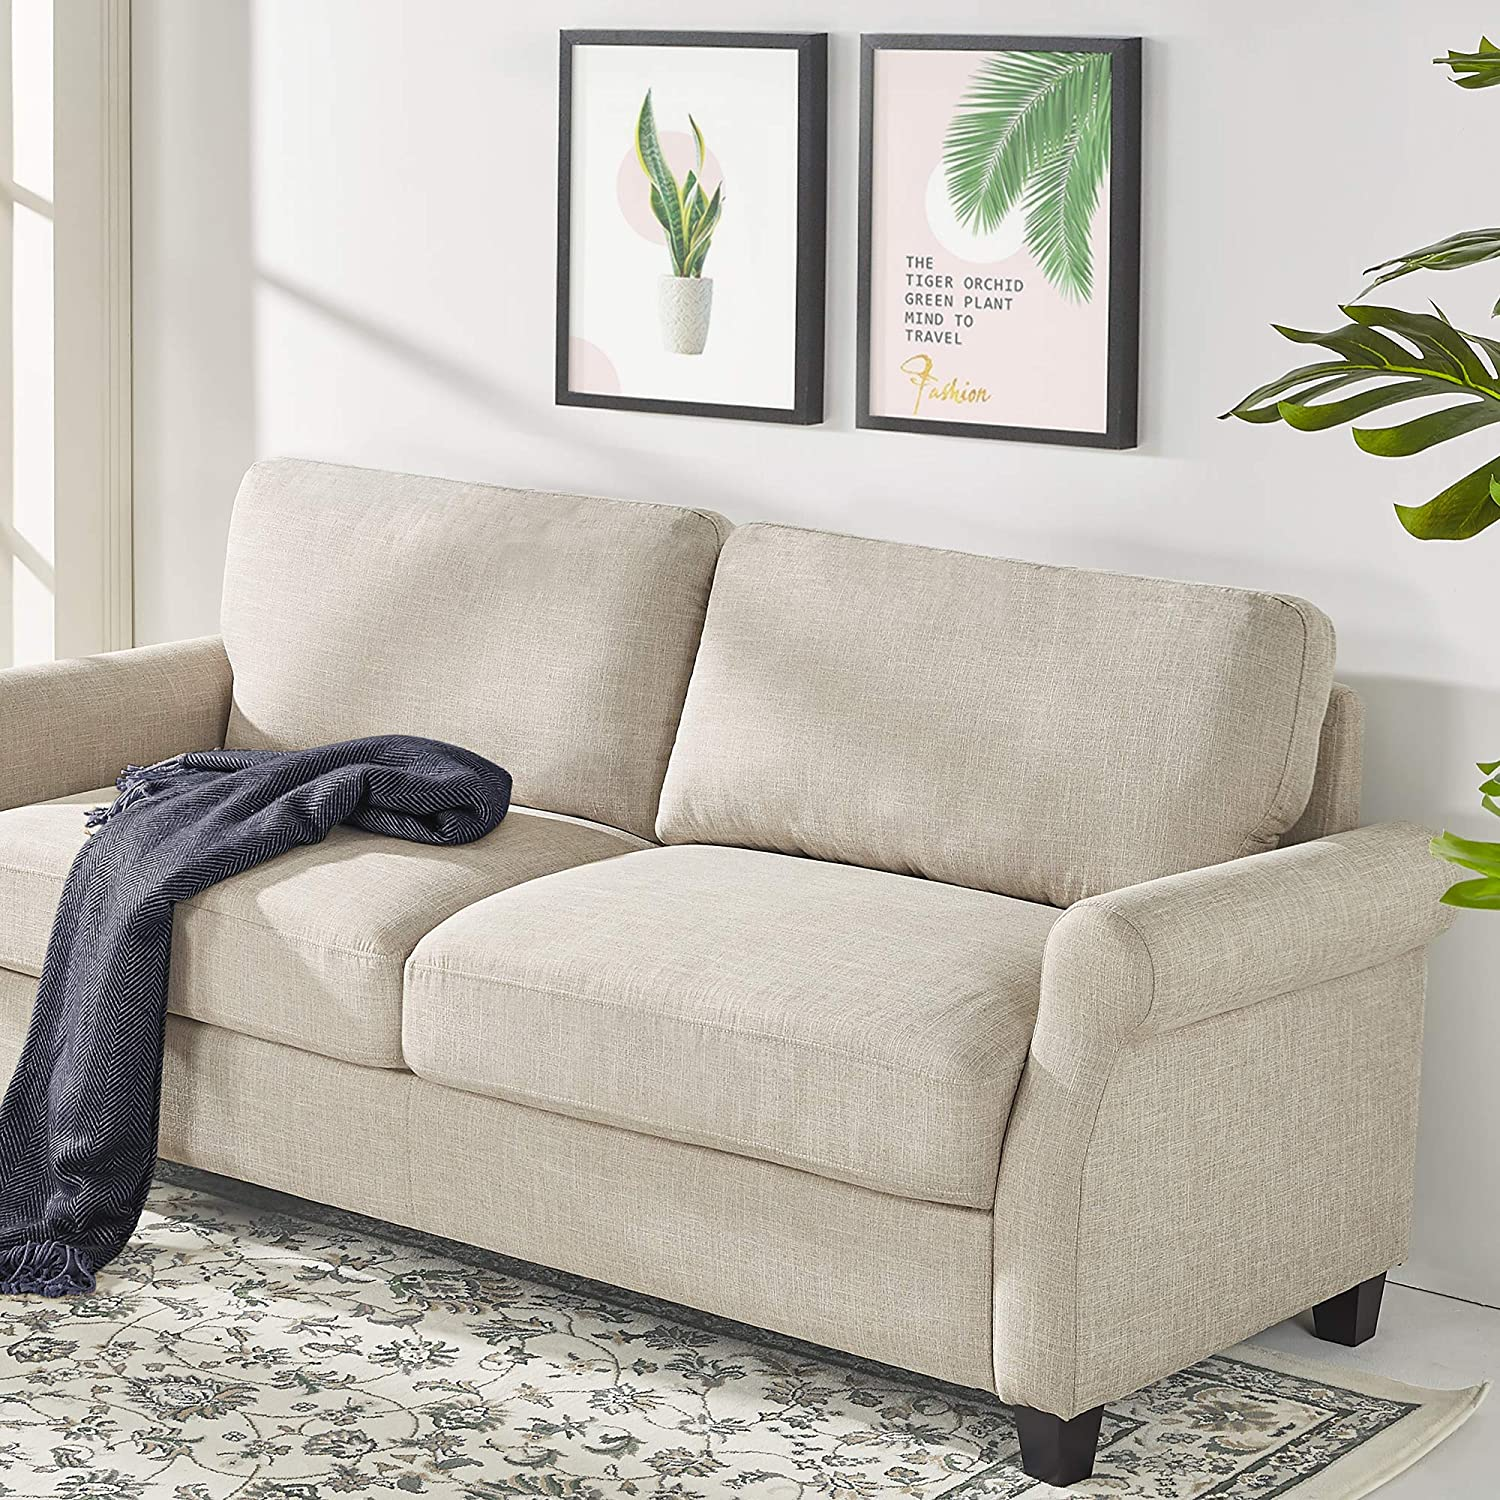 Cheap living room set under 200 top rated